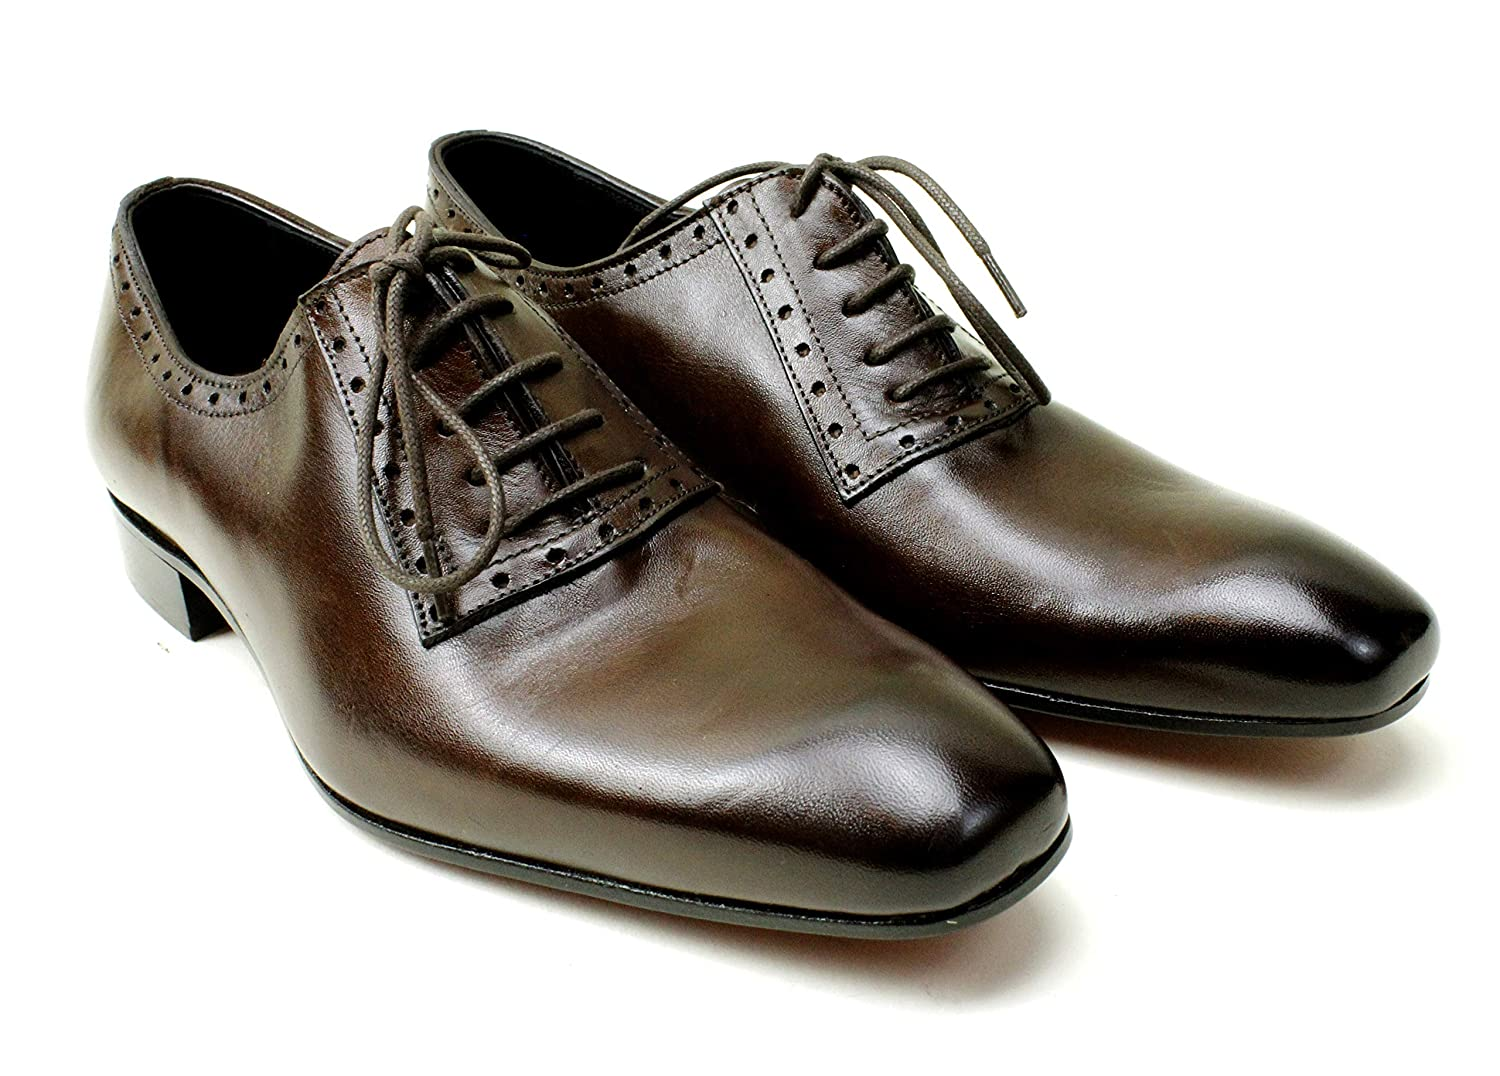 Ivan Troy Kids Laces Ryan Brown Handmade Italian Leather Dress Shoes//Oxford Shoes